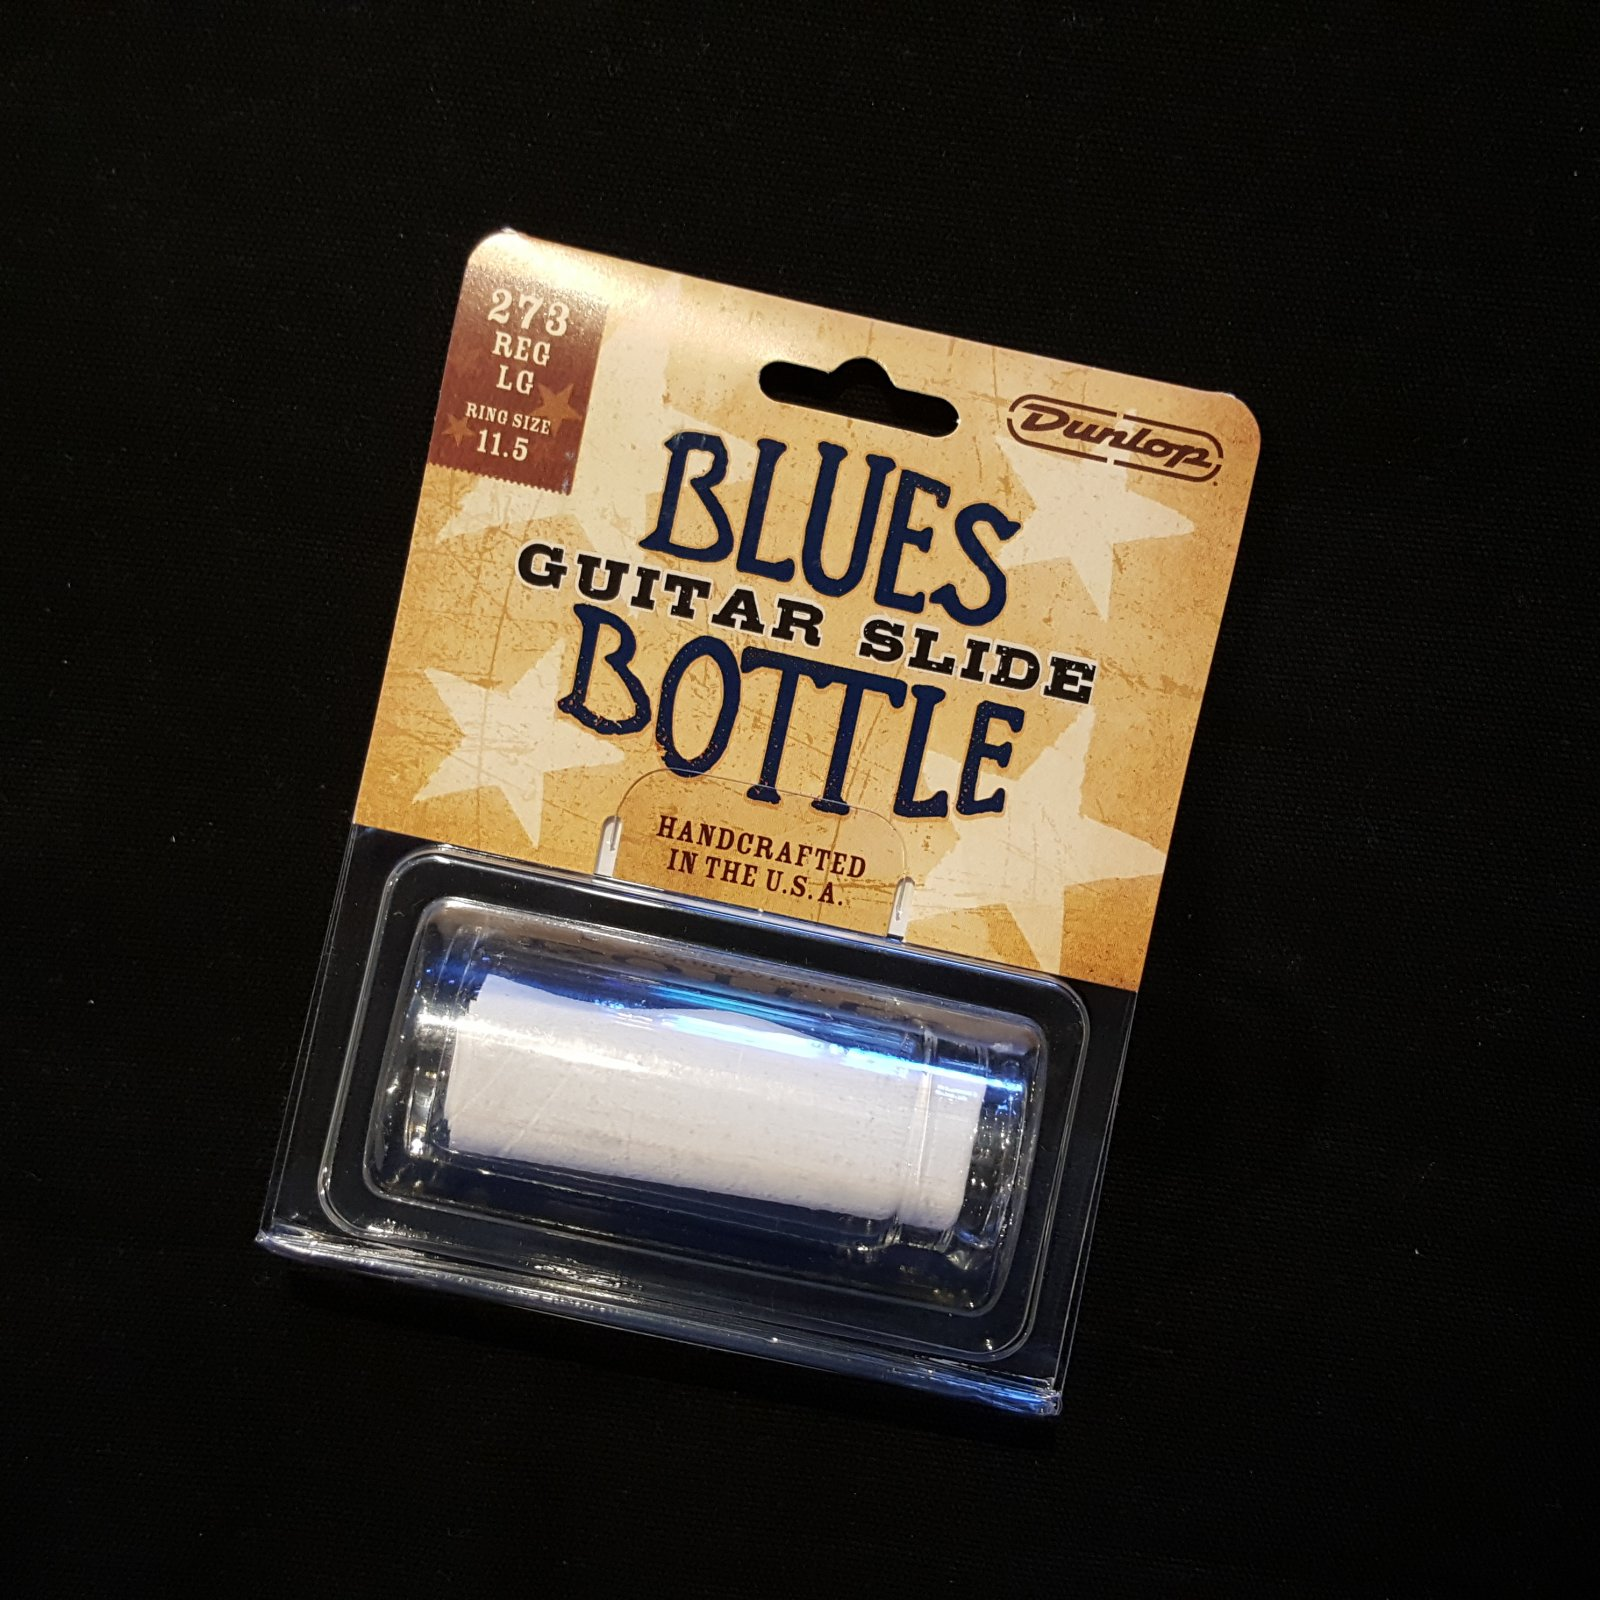 Dunlop 273 Blues Bottle Slide Size 11.5